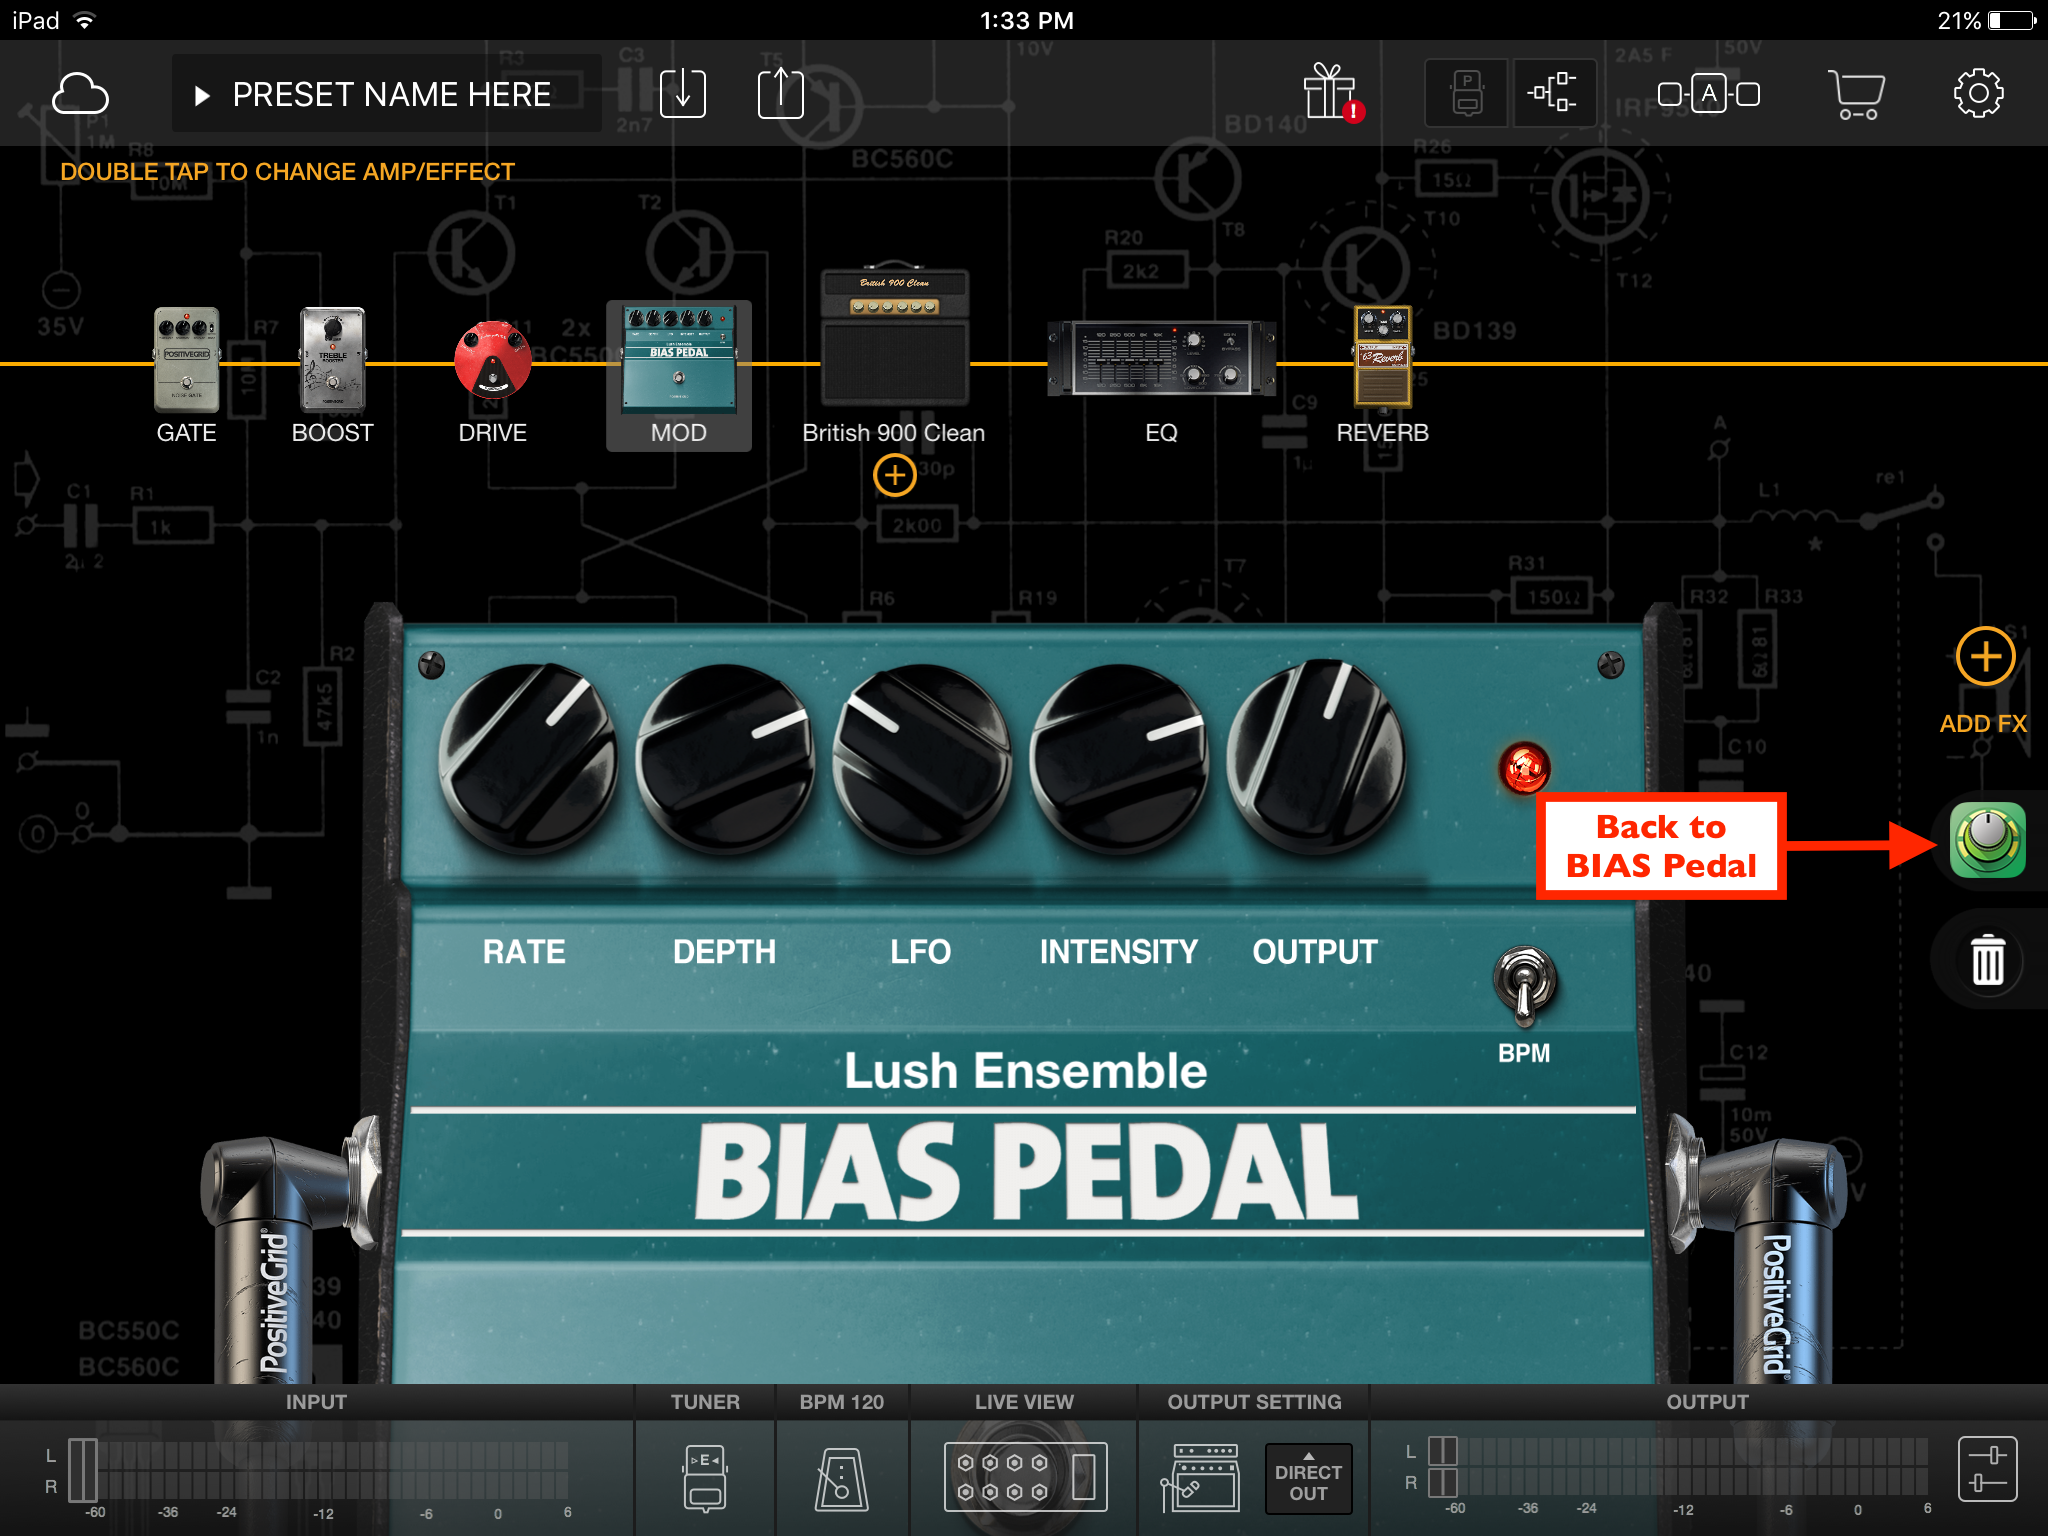 open_in_BIAS_Pedal.png